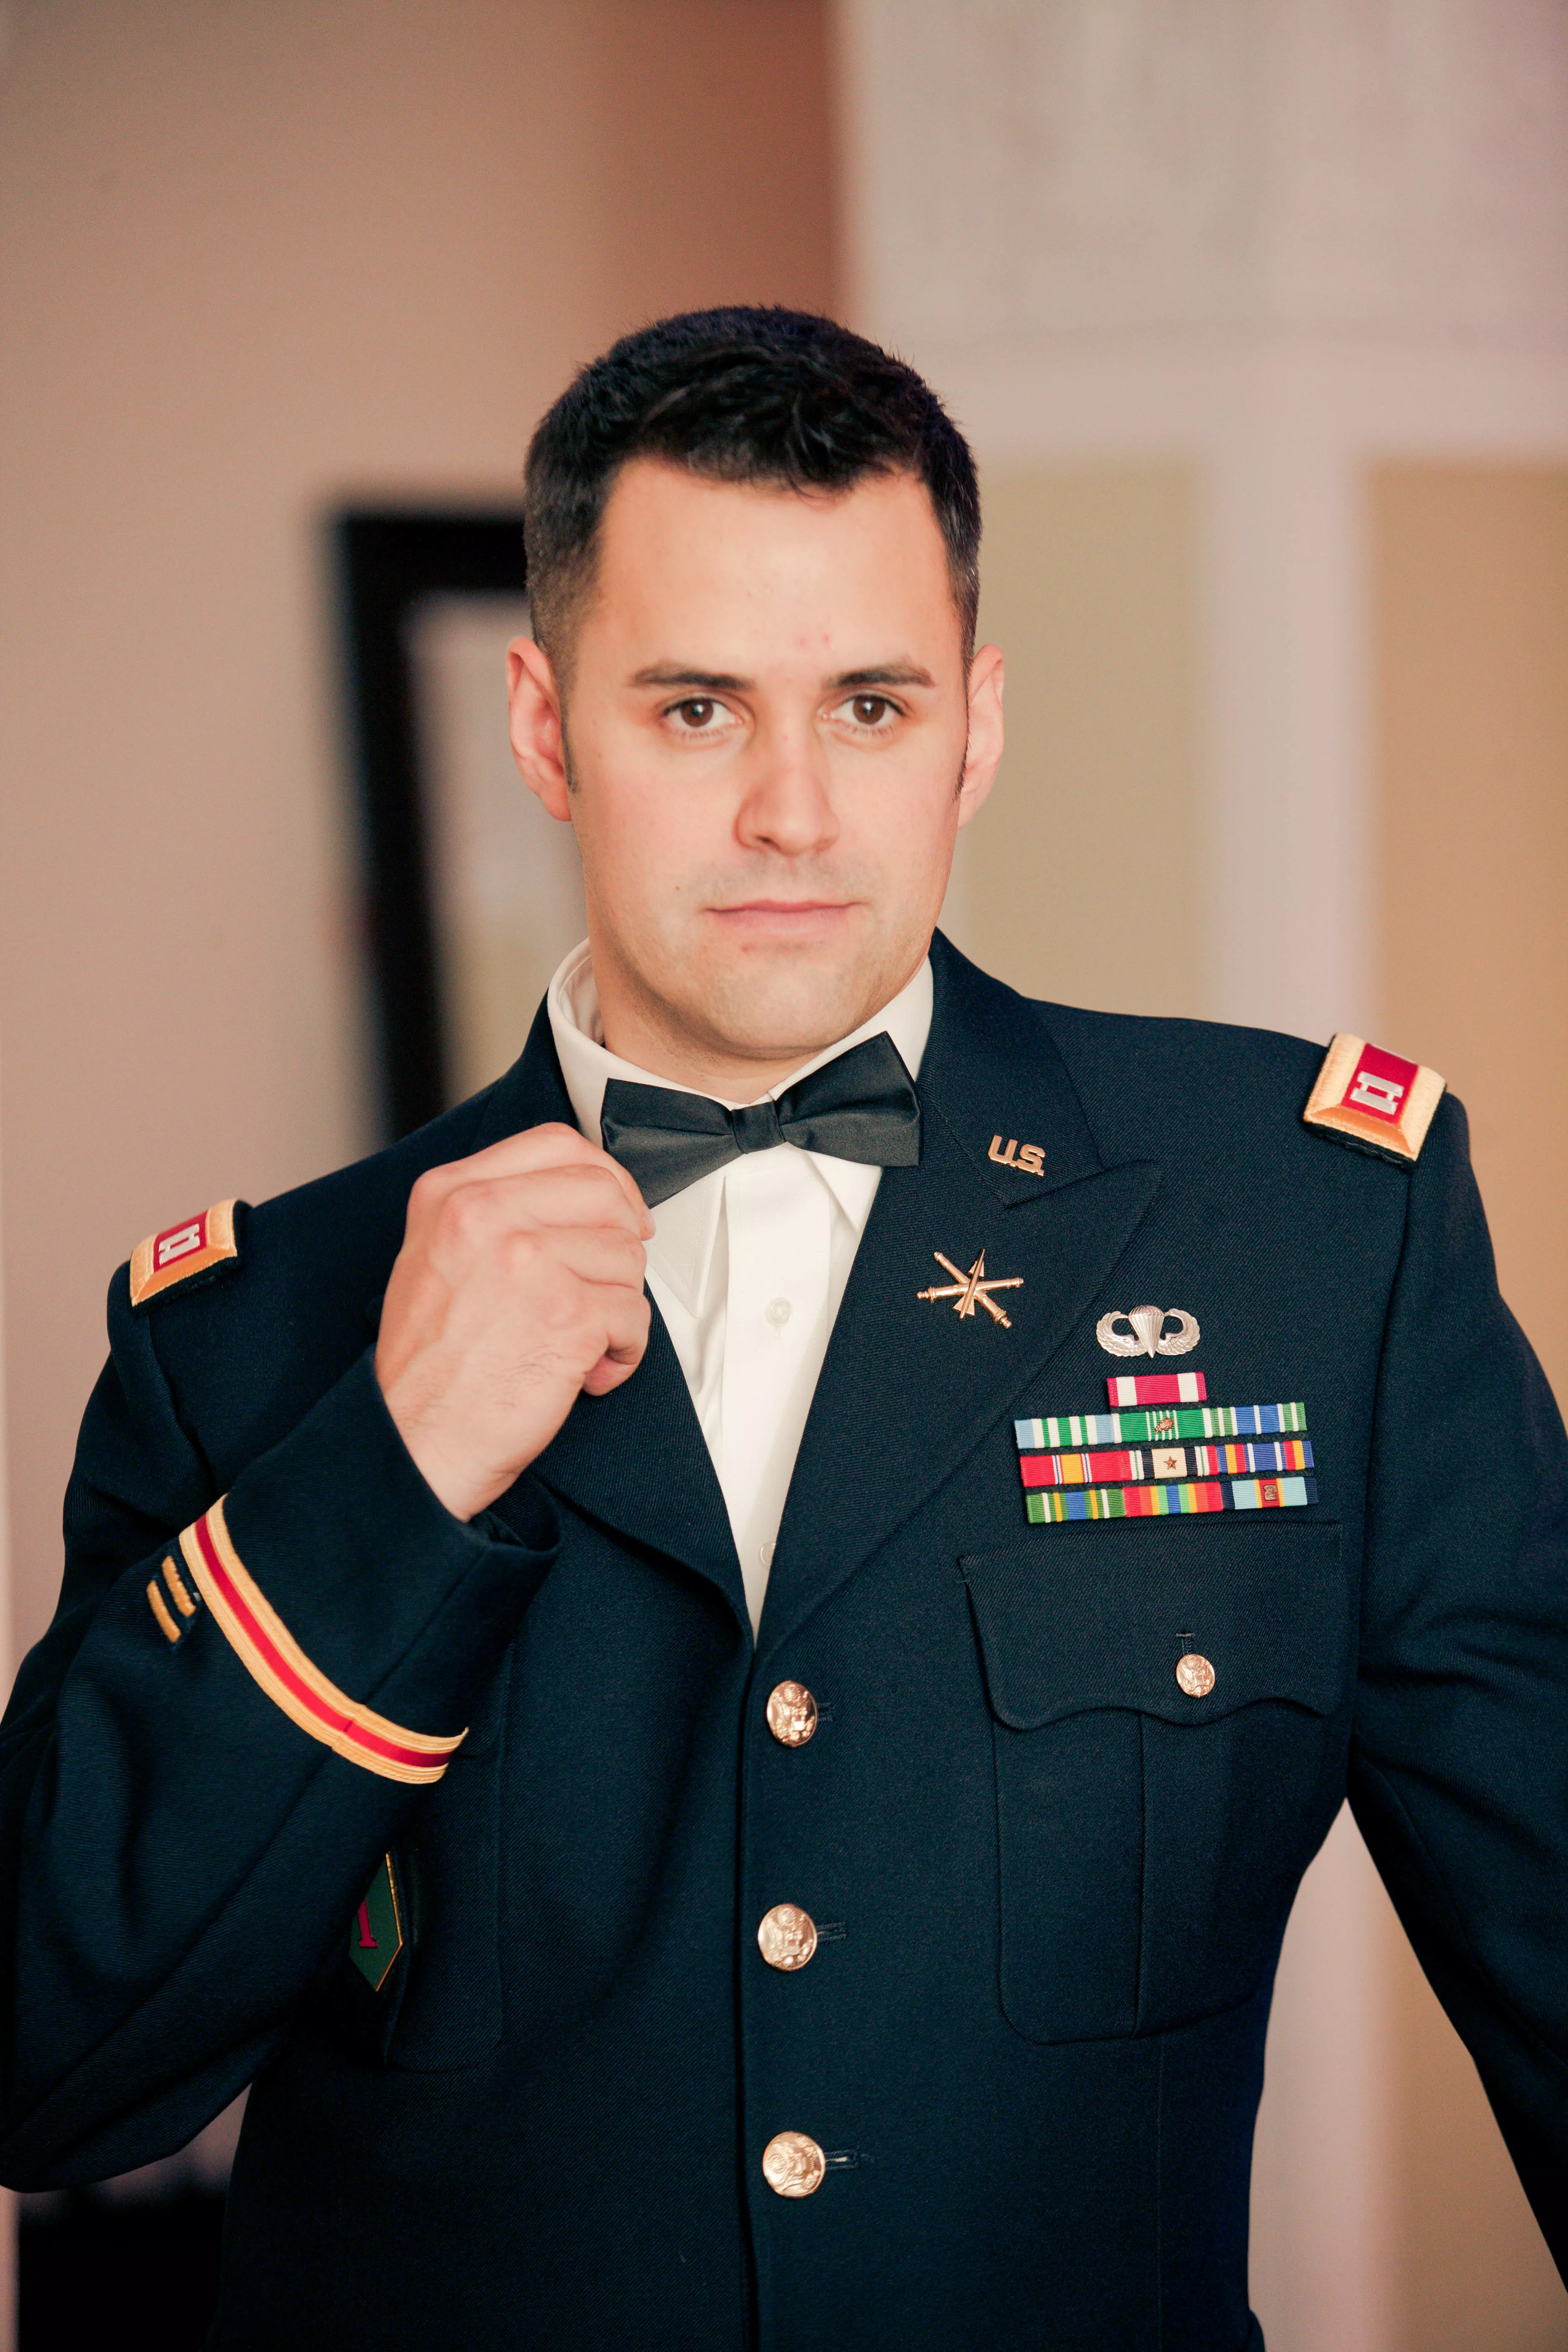 Military Uniform With Bow Tie